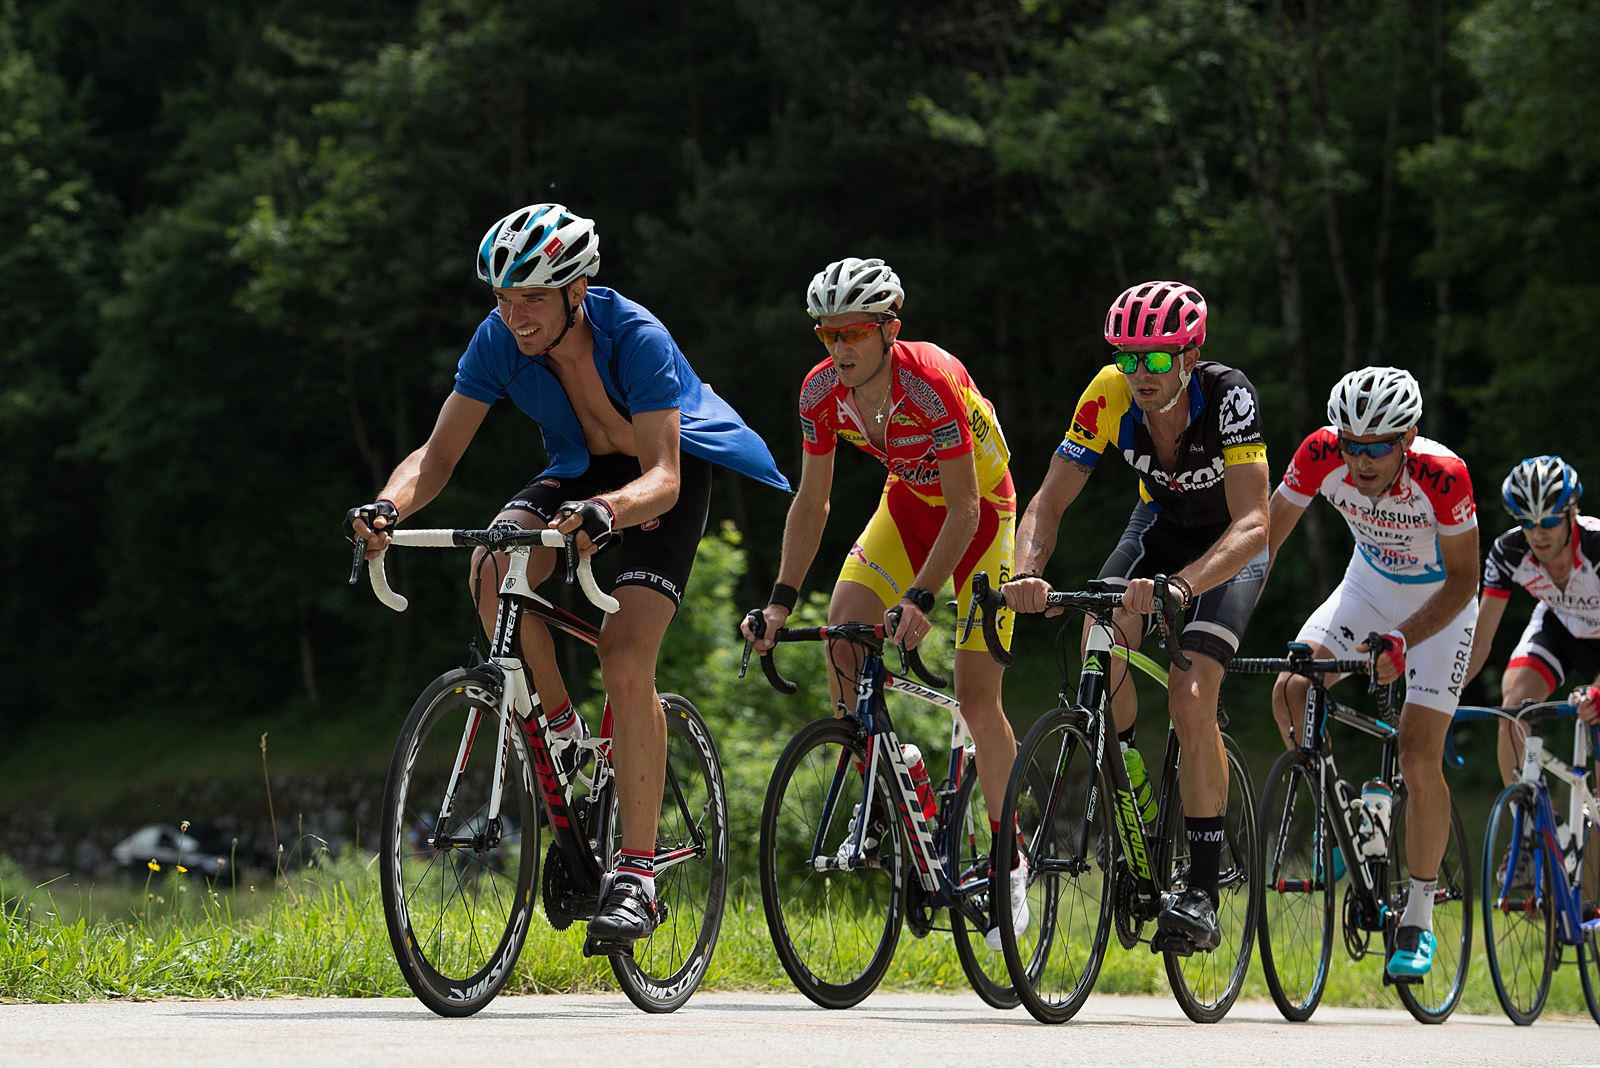 Photographe Cyclisme En Combe De Savoie : Sur Une Course Cyclo En Savoie